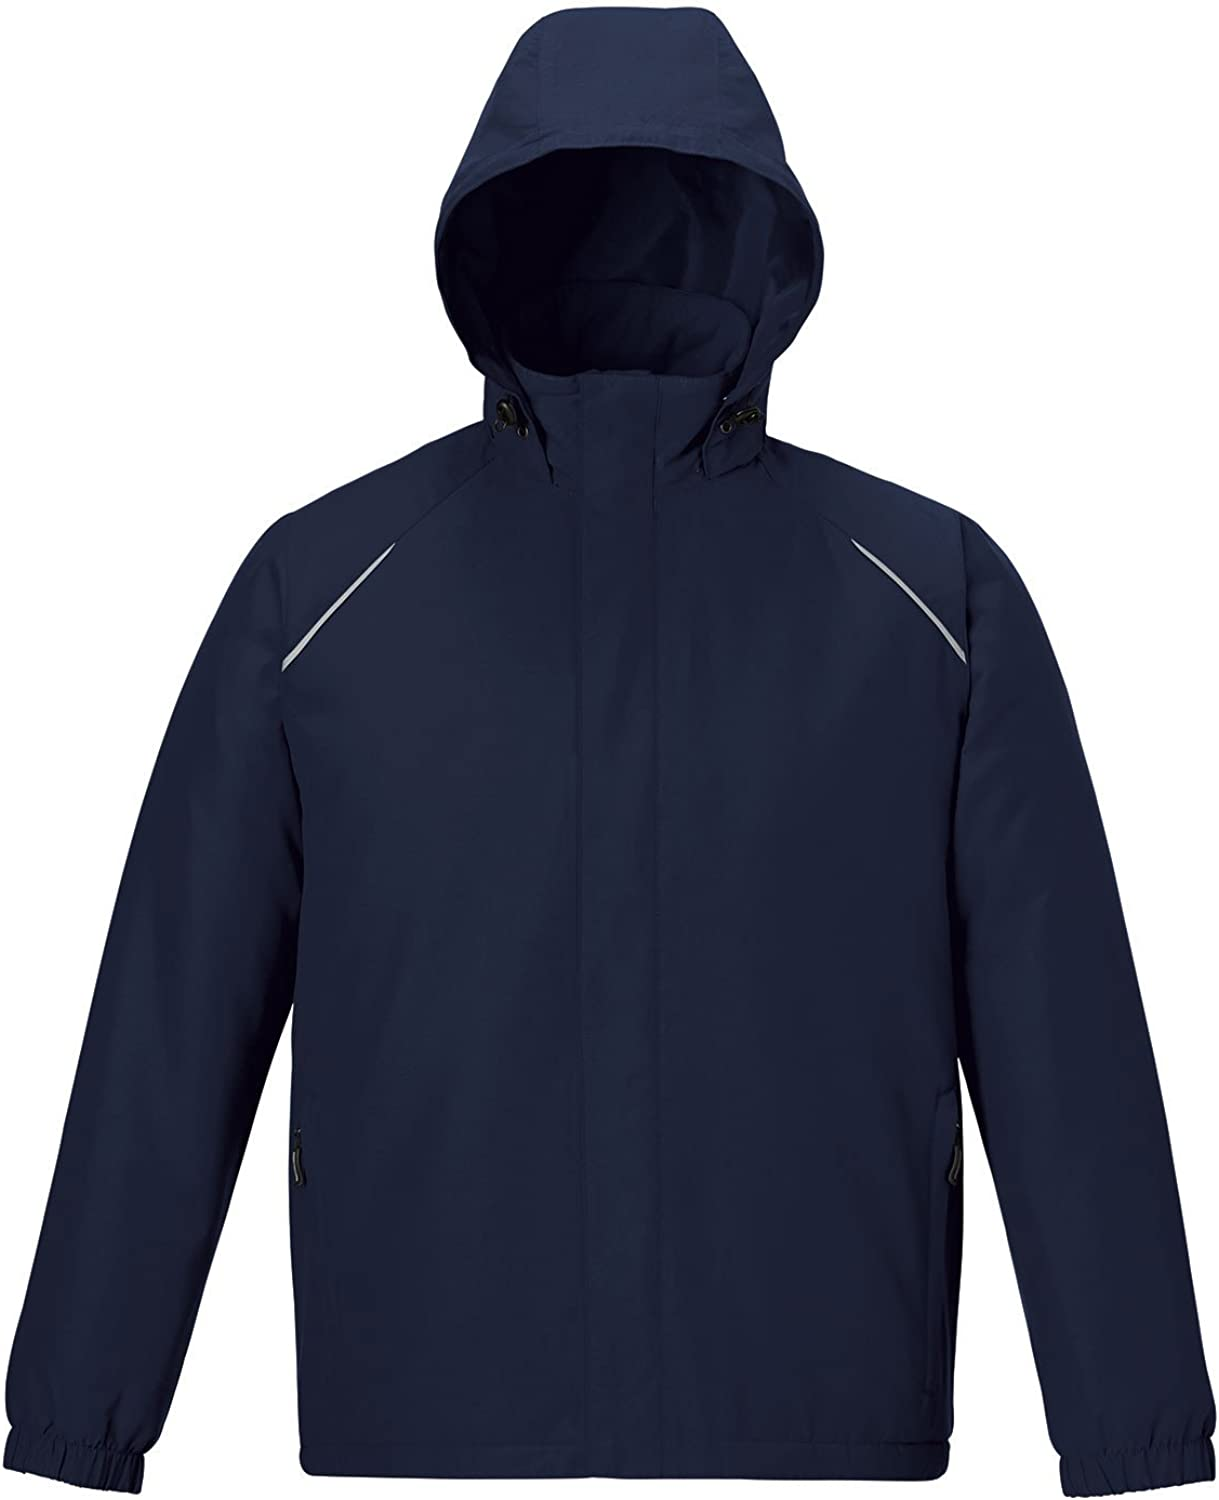 Core 365 by North End Brisk Insulated Jacket (Navy 4X)